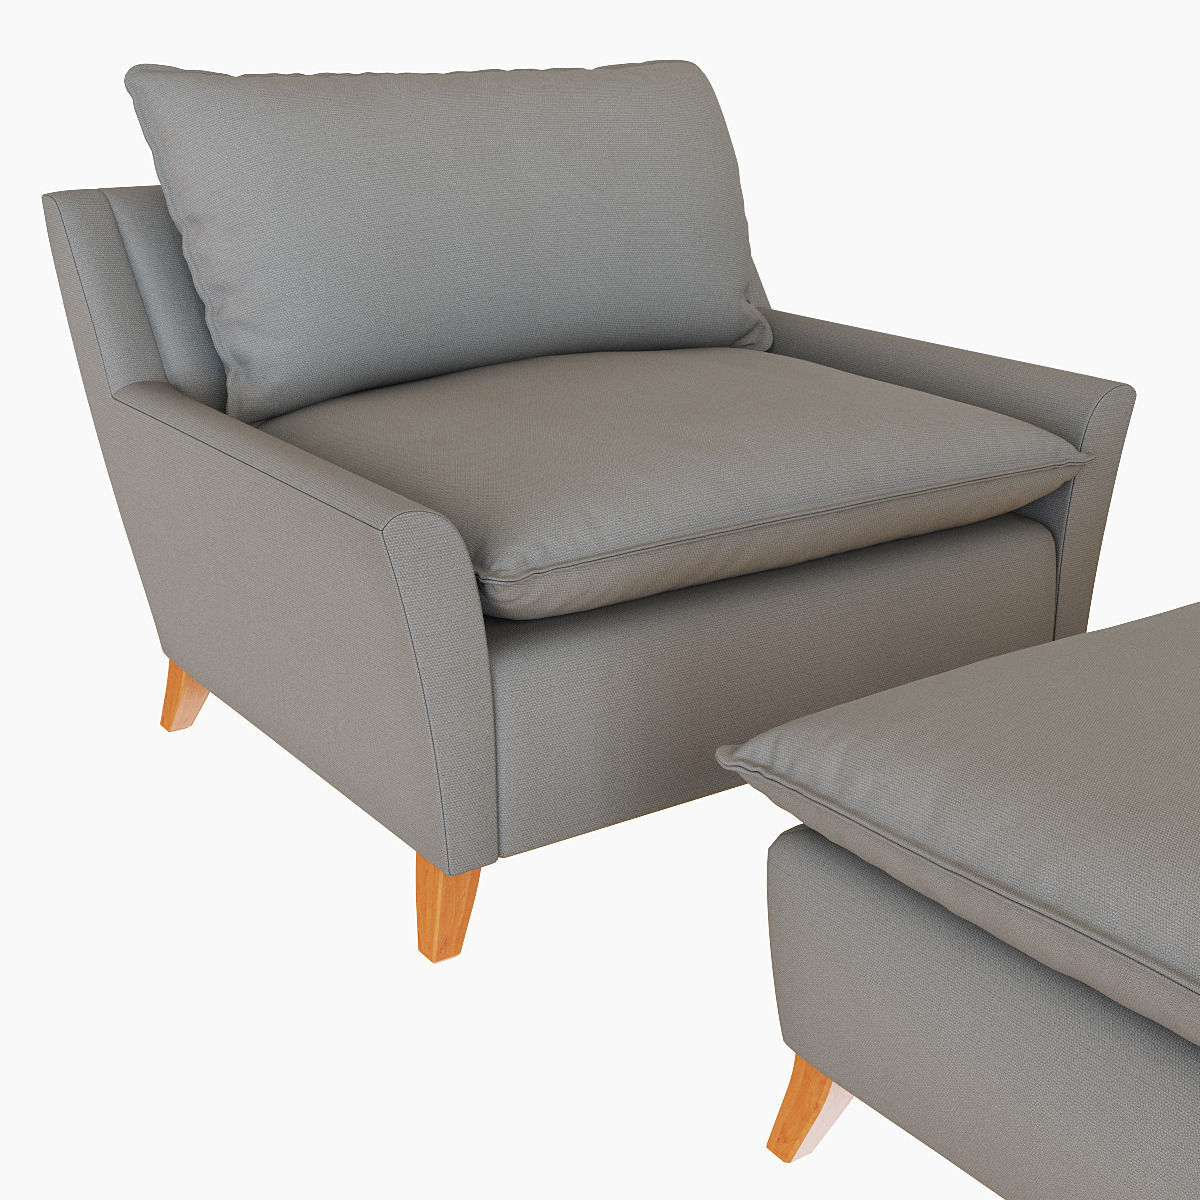 Perfect ... West Elm Bliss Down Filled Chair And A Half 3d Model Max ...